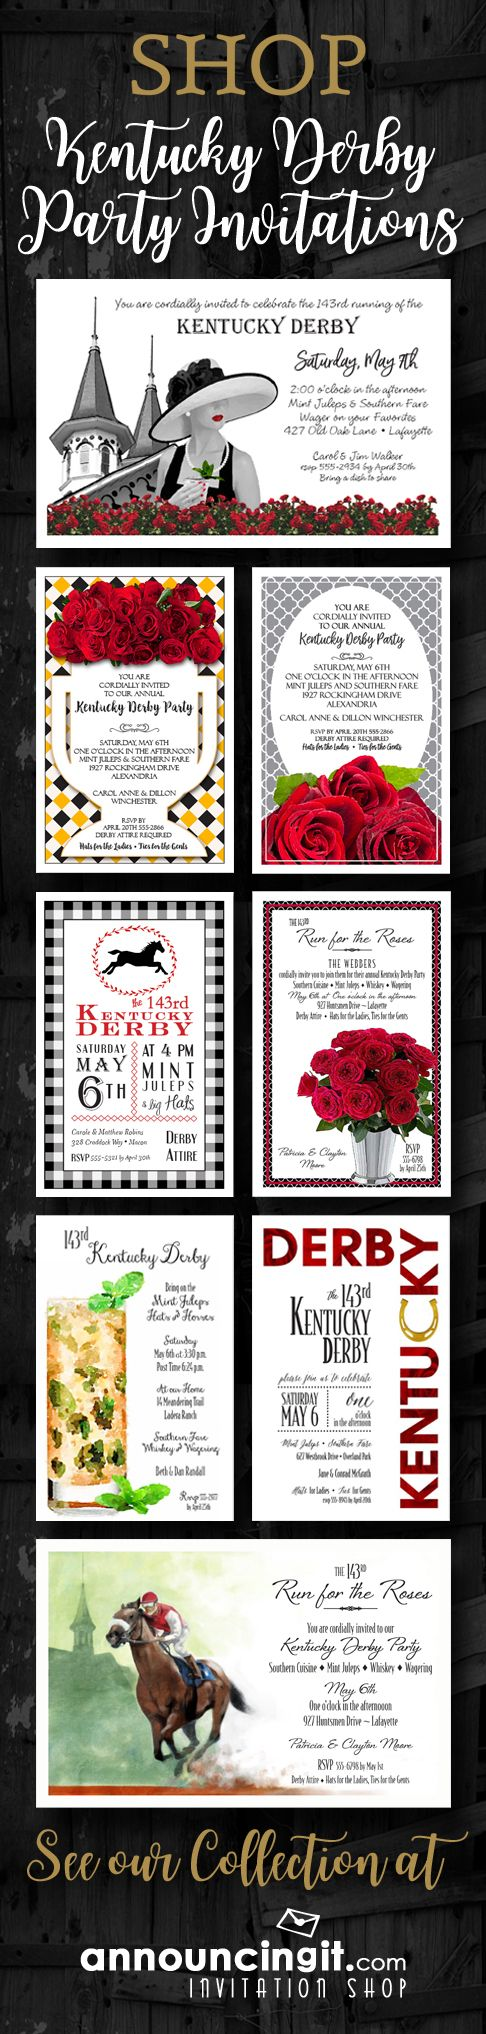 Kentucky Derby Party Invitations your guests will love! Also fabulous for derby themed bridal shower invitations, derby themed birthday invitations and horse racing invitations. Come see our entire collection at Announcingit.com Invitation Shop